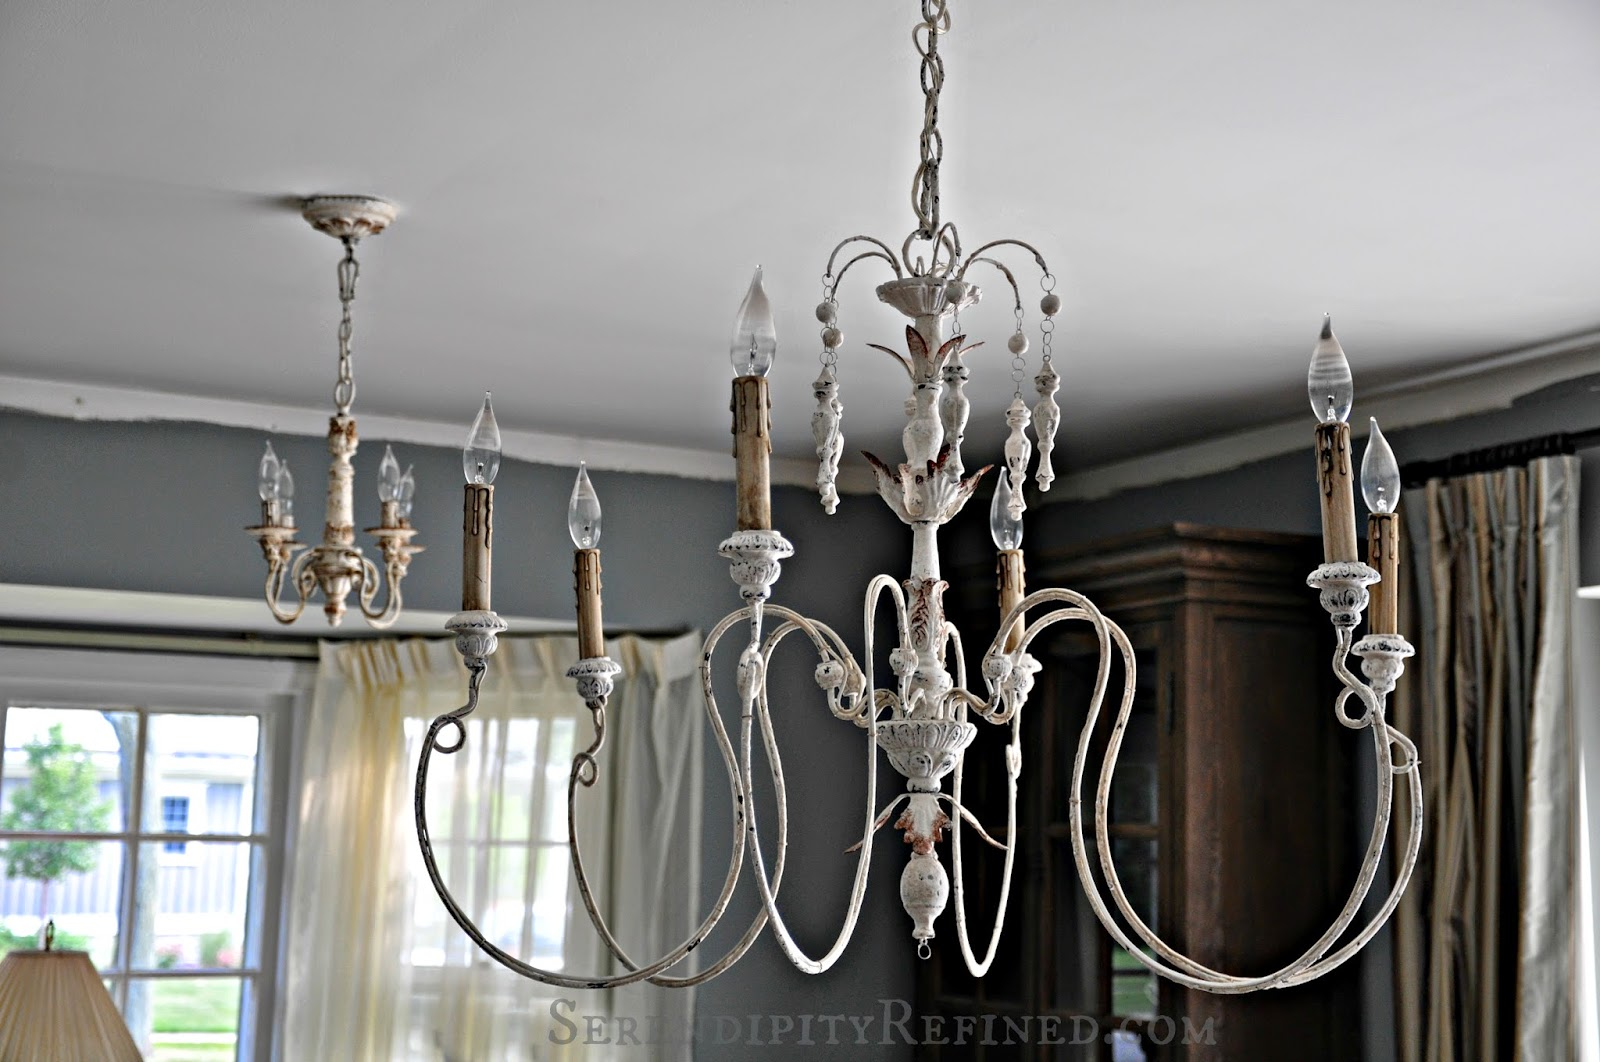 Serendipity refined blog french country light fixtures for Dining room chandeliers